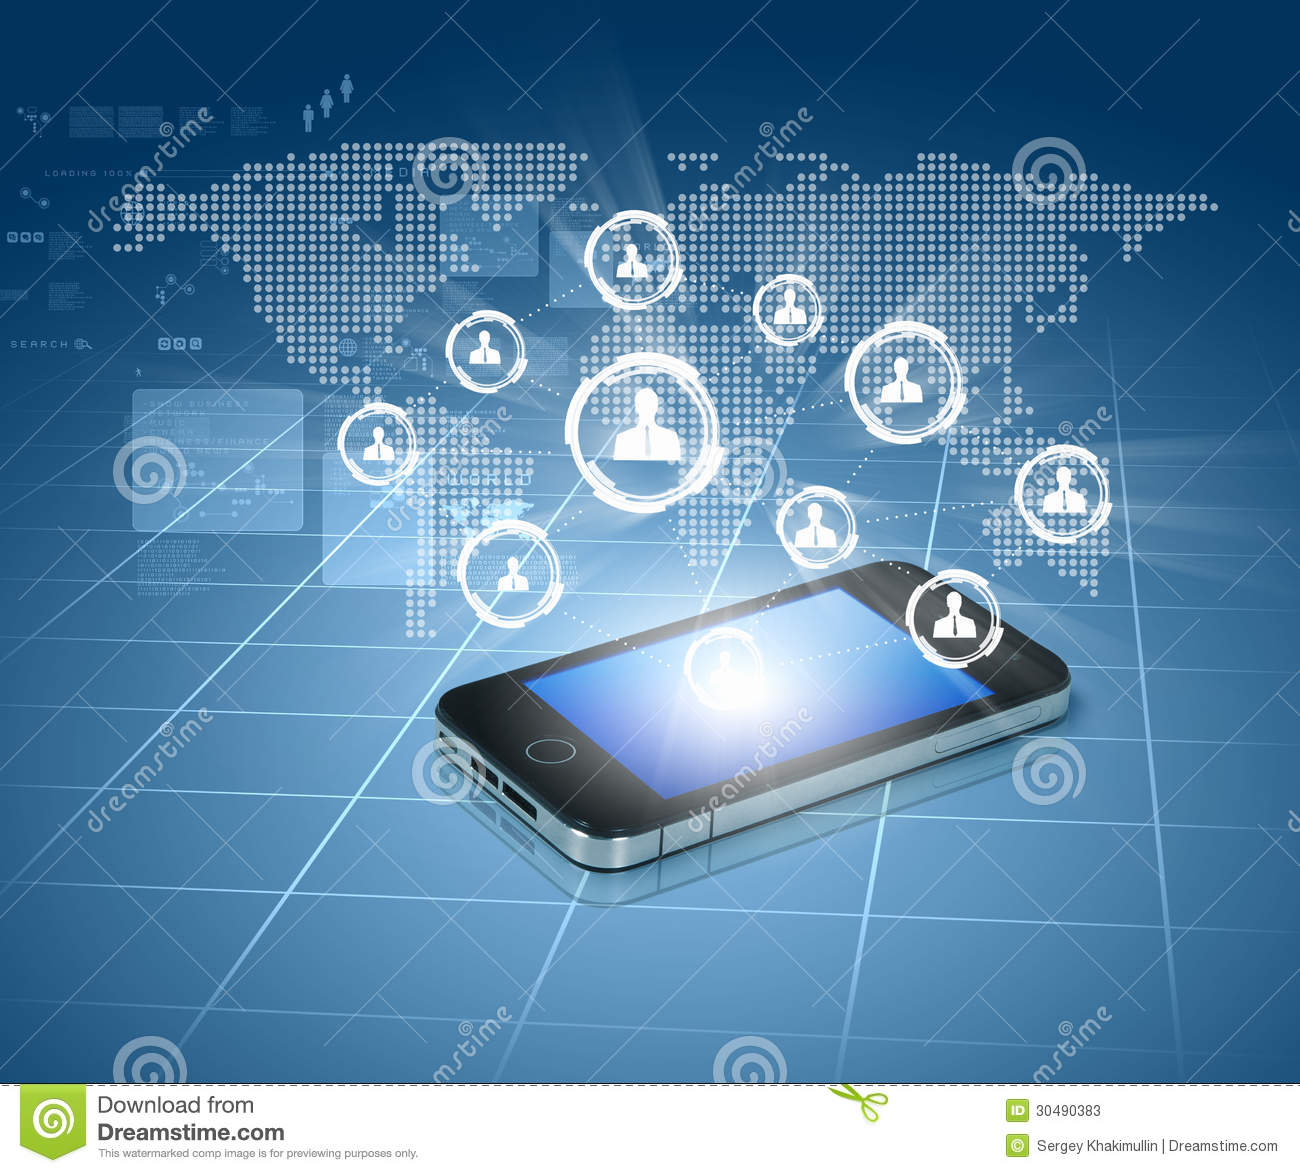 Modern Communication Technology Stock Photos - Image: 30490383